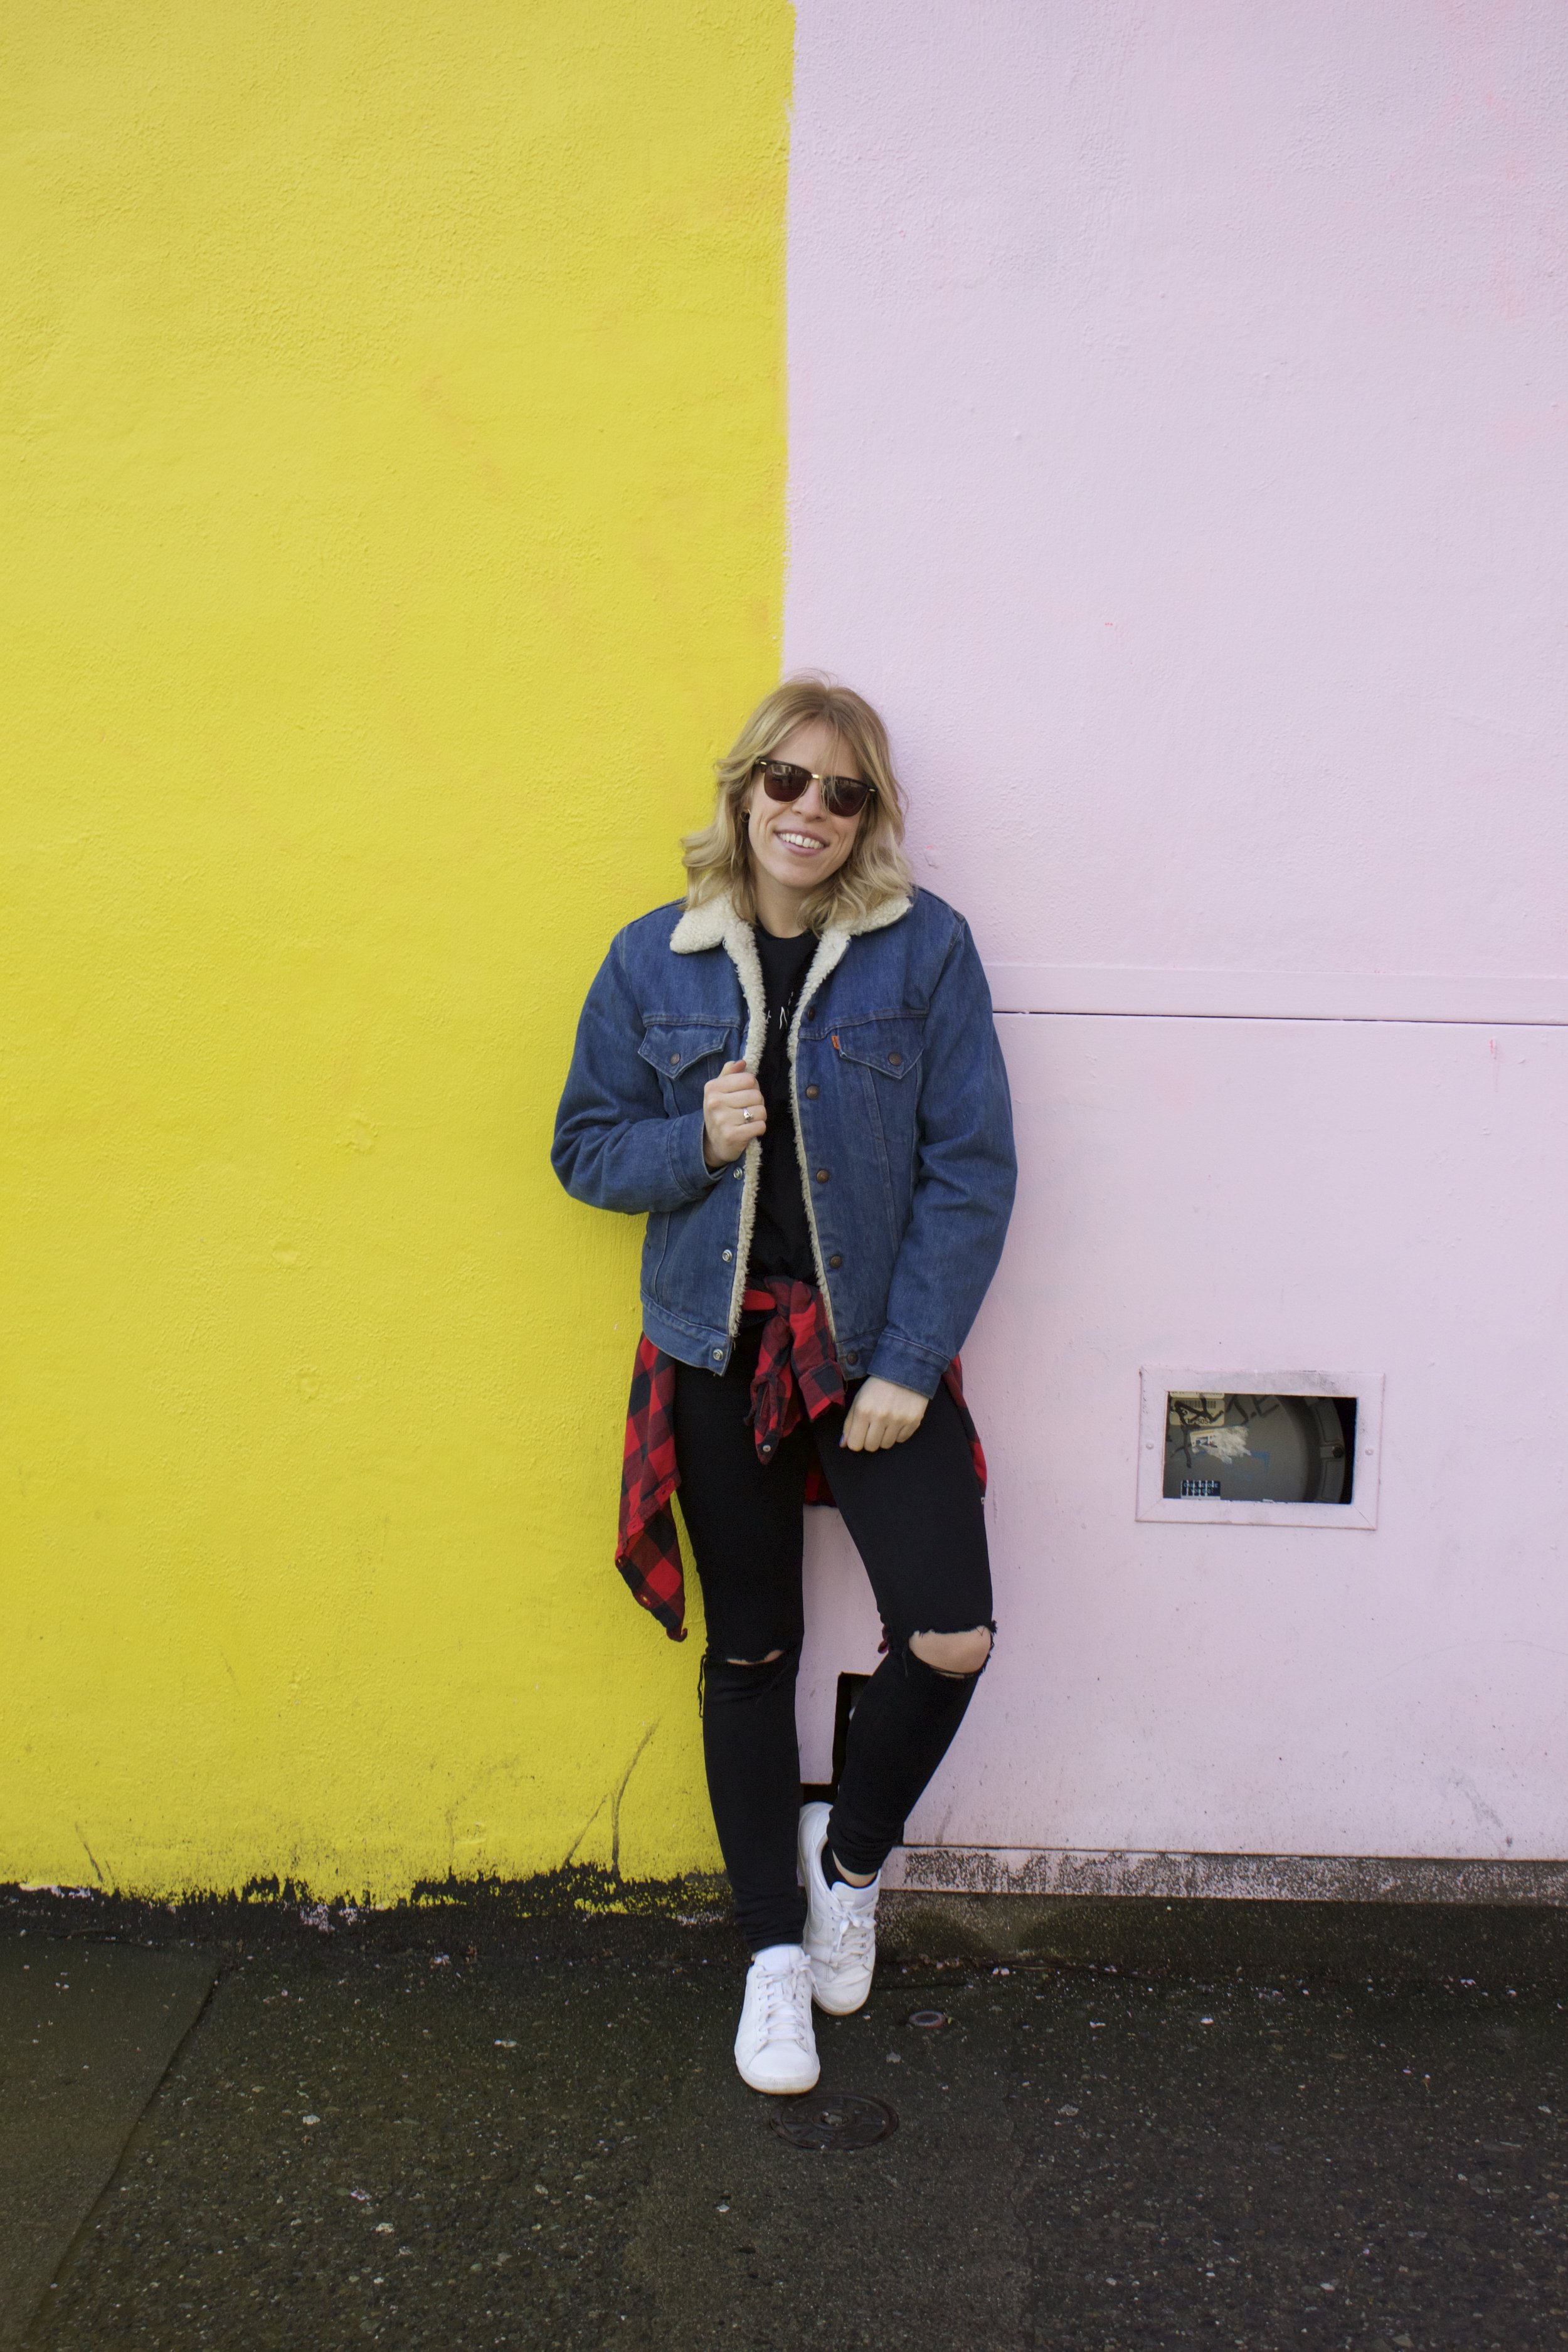 Levi's Vintage Denim Jacket from    Gypsy Drifter   , T-Shirt from    Chatachuk Market   ,    Aerie    Plaid Shirt,    American Eagle    Jeans,    Nike    Sneakers